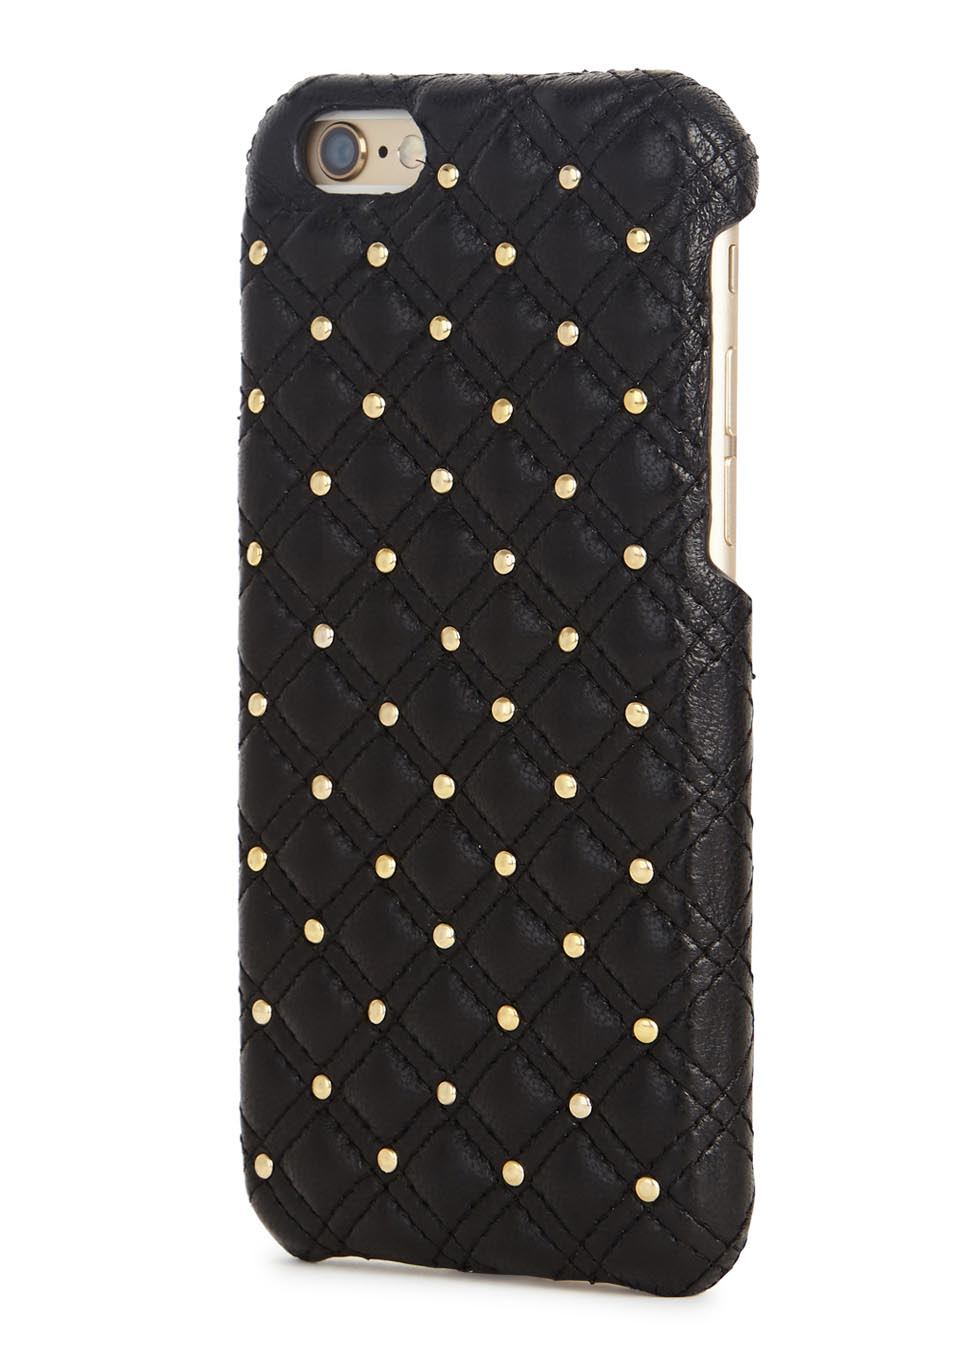 Black studded leather iPhone 6/6S case - The Case Factory